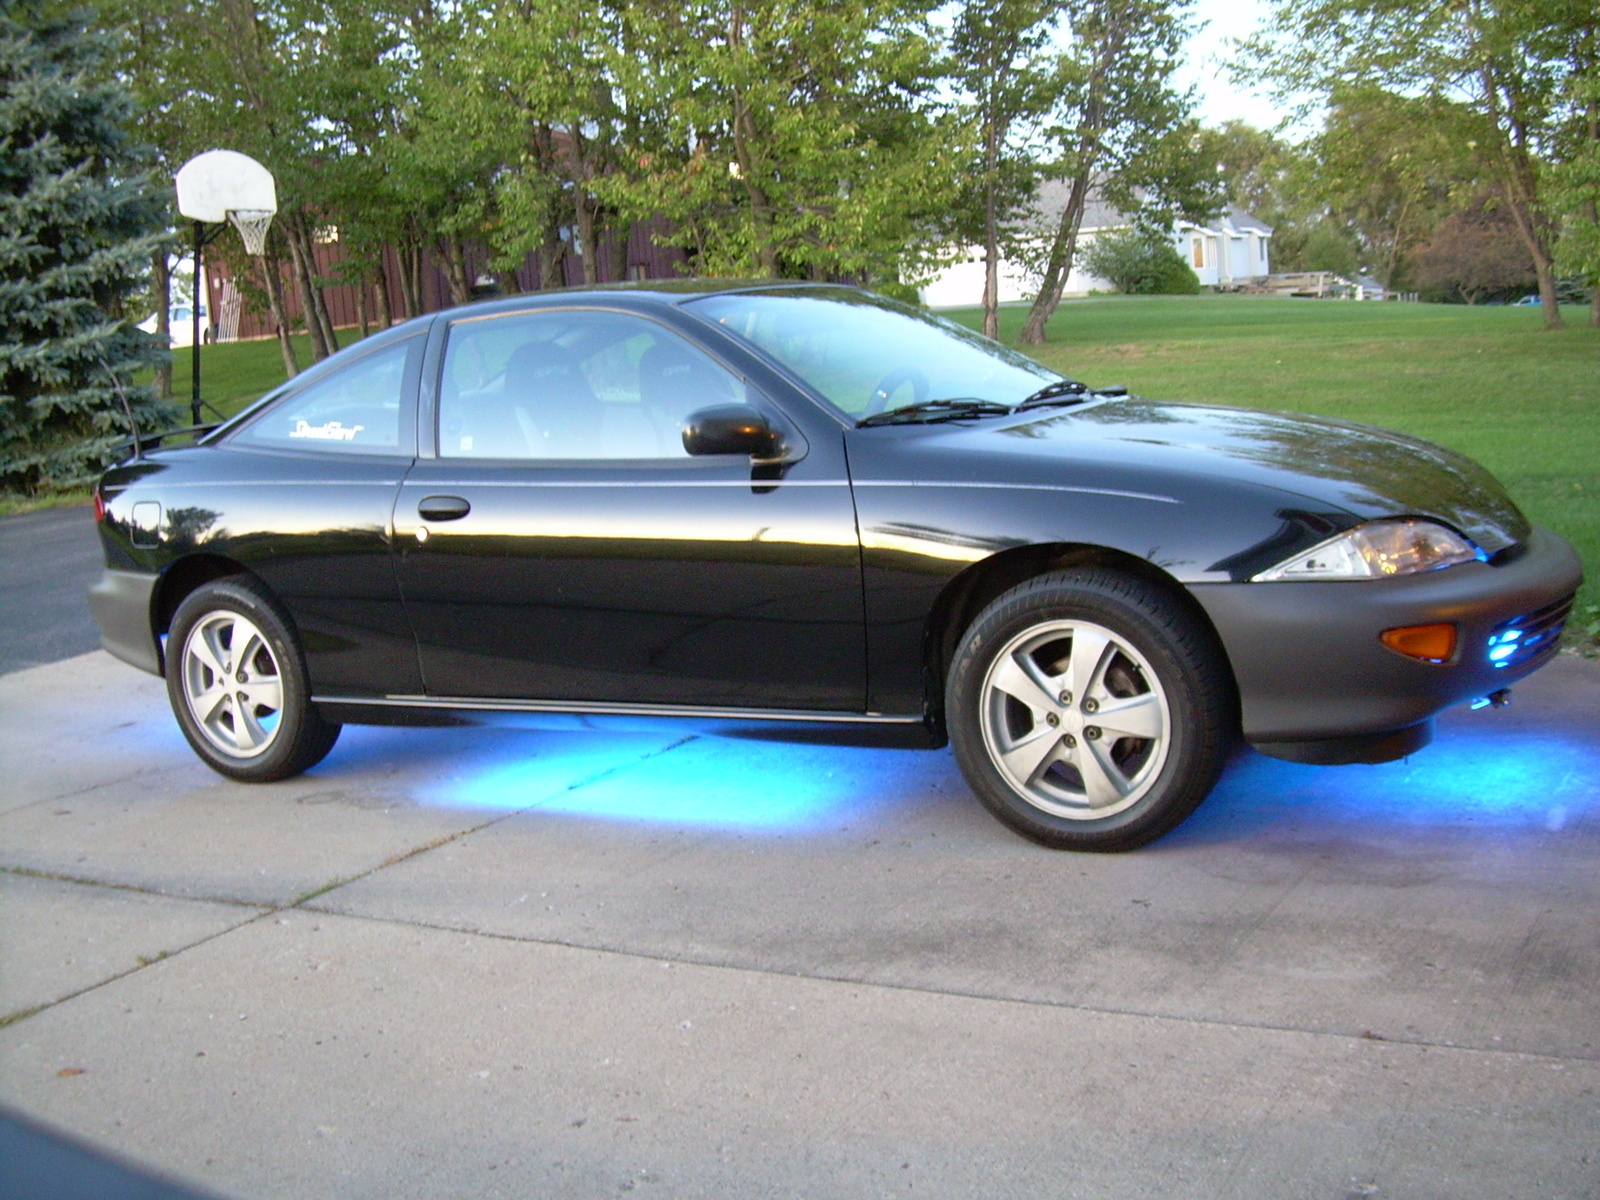 1999 Chevrolet Cavalier - Other Pictures - CarGurus